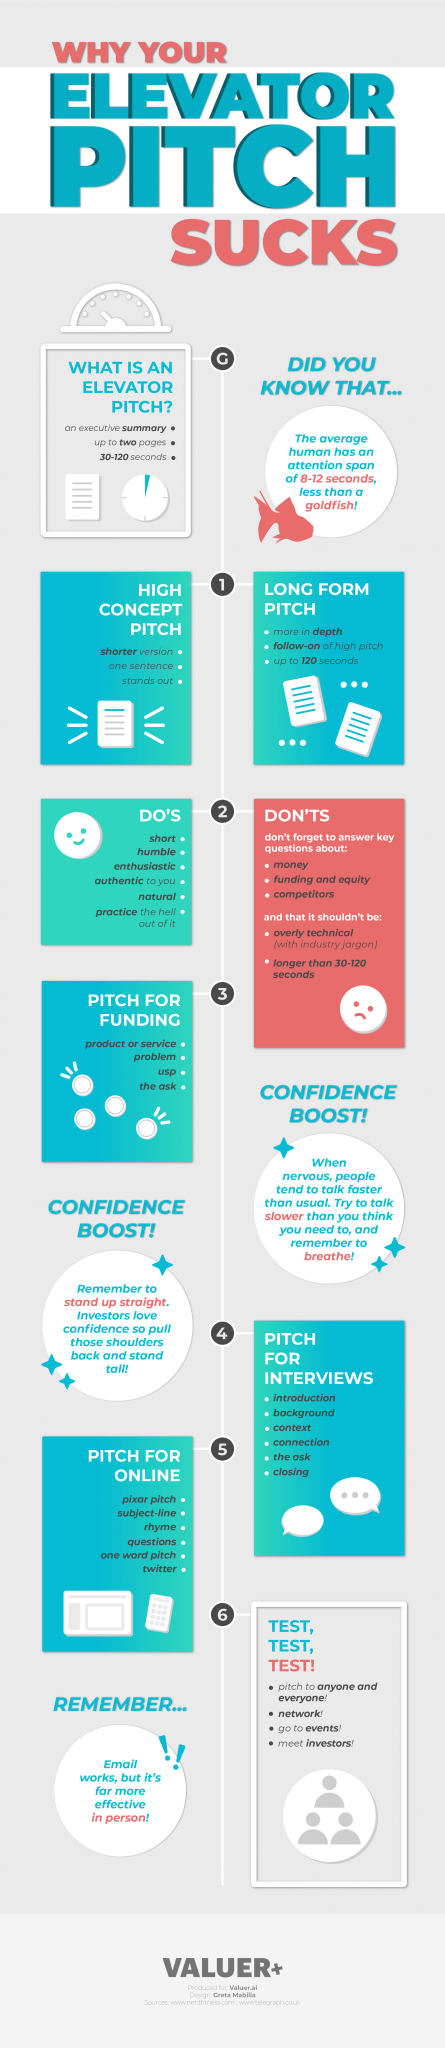 Why Your Elevator Pitch Sucks Infographic